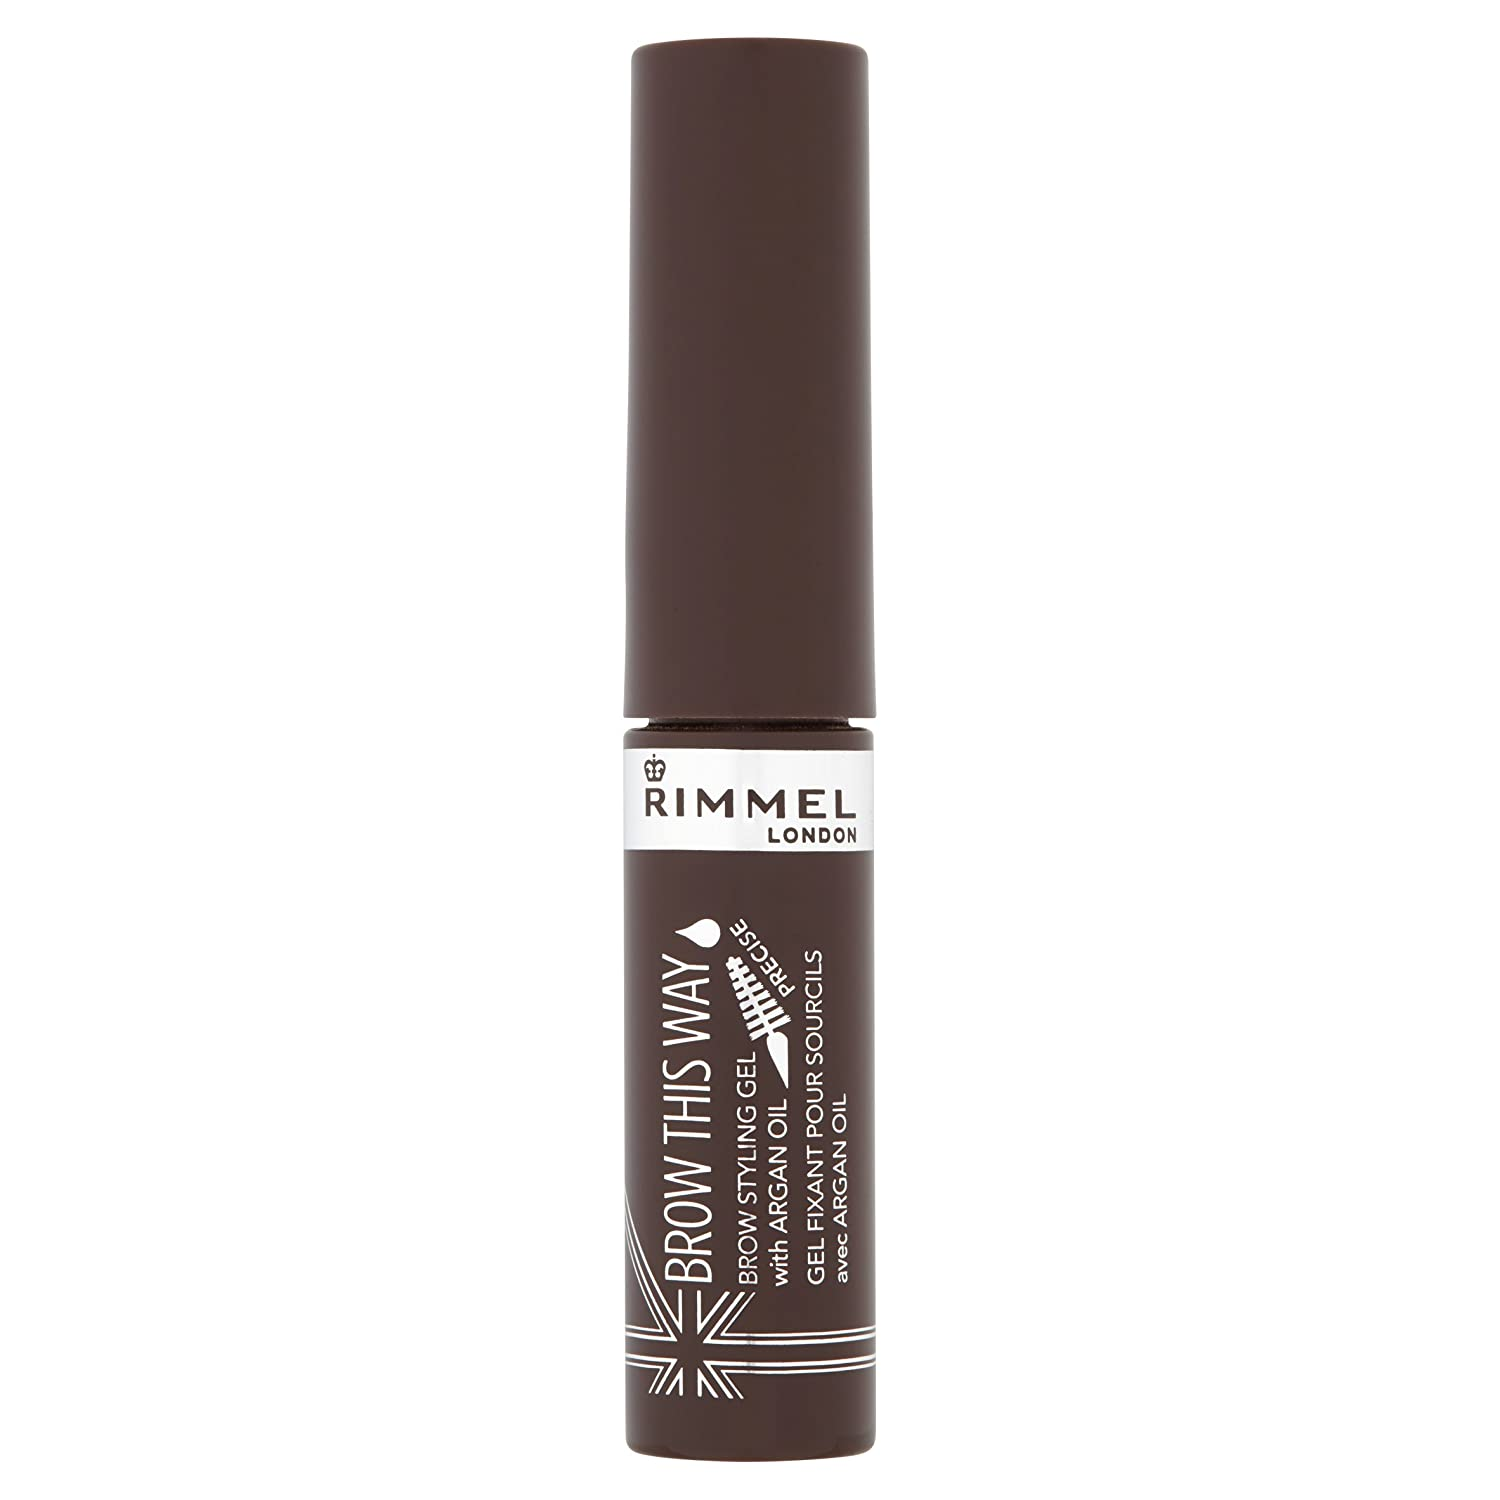 Rimmel Brow This Way with Argan Oil, Blonde 5 ml: Amazon.co.uk: Beauty